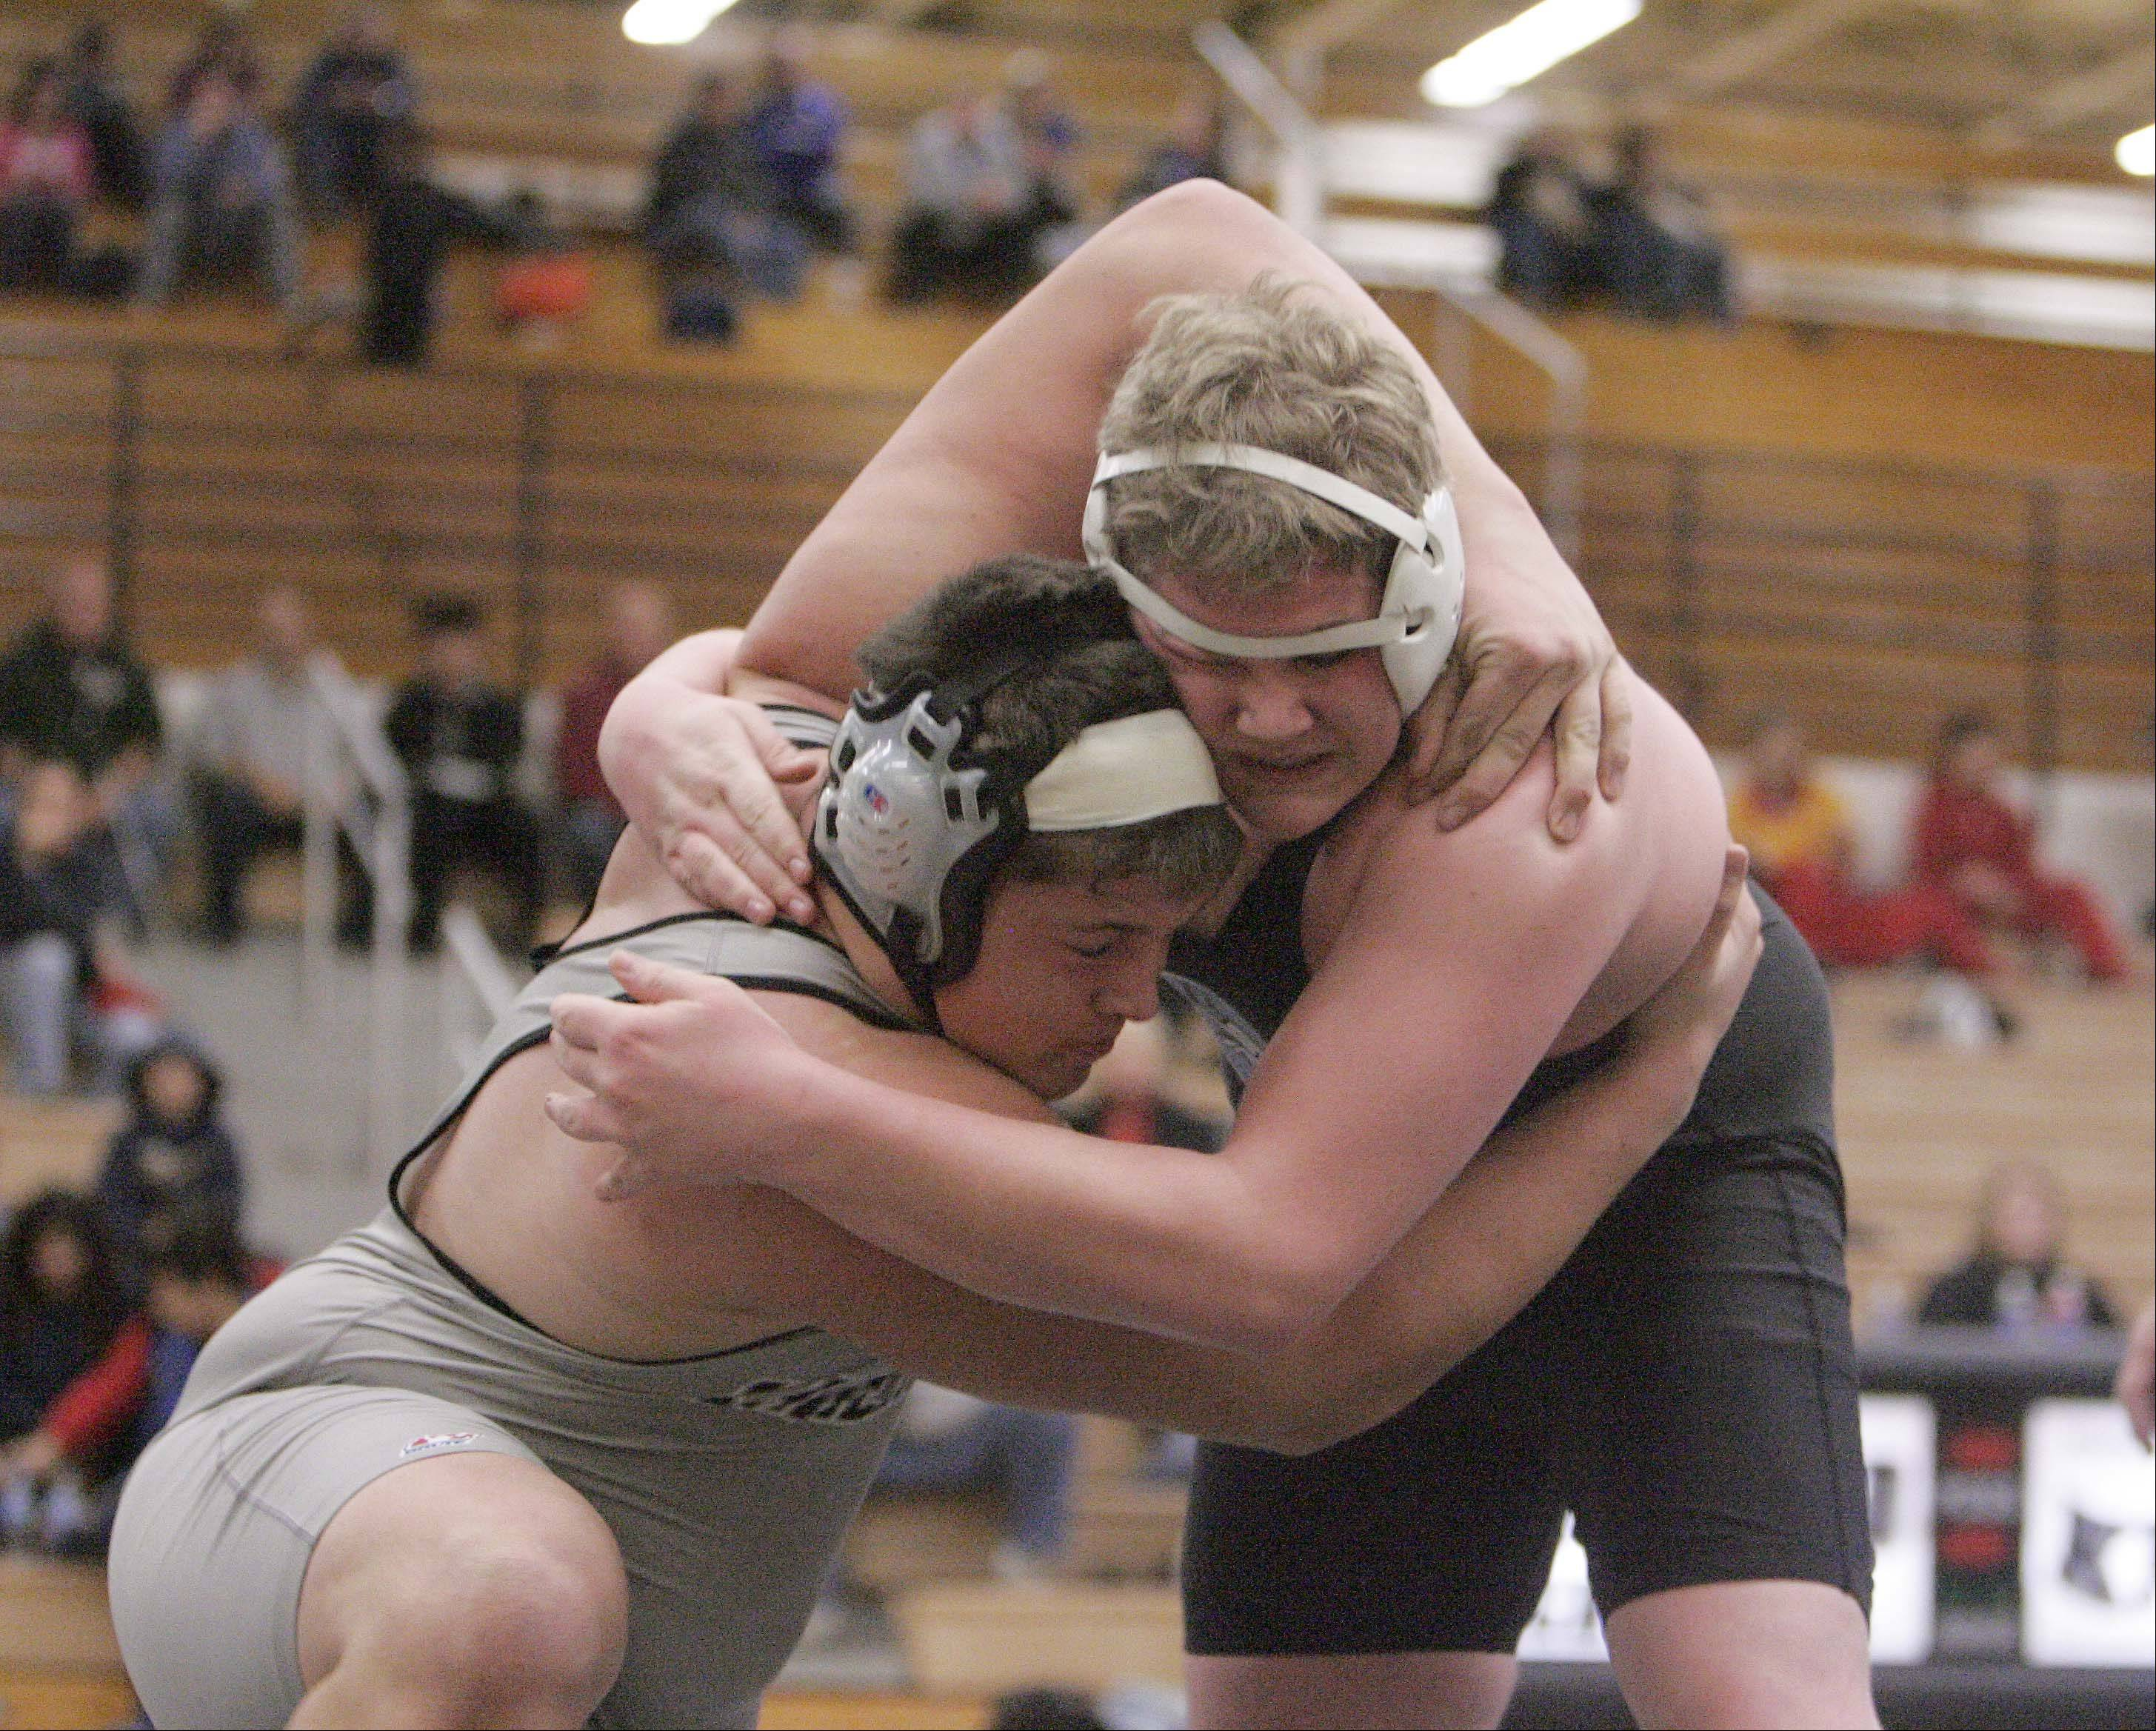 Kanelands�s Zach Theis wrestles Geneva�s Jake Anderson at 285 pounds during the Kaneland wrestling quad at Saturday December 15, 2012. Anderson won the match.